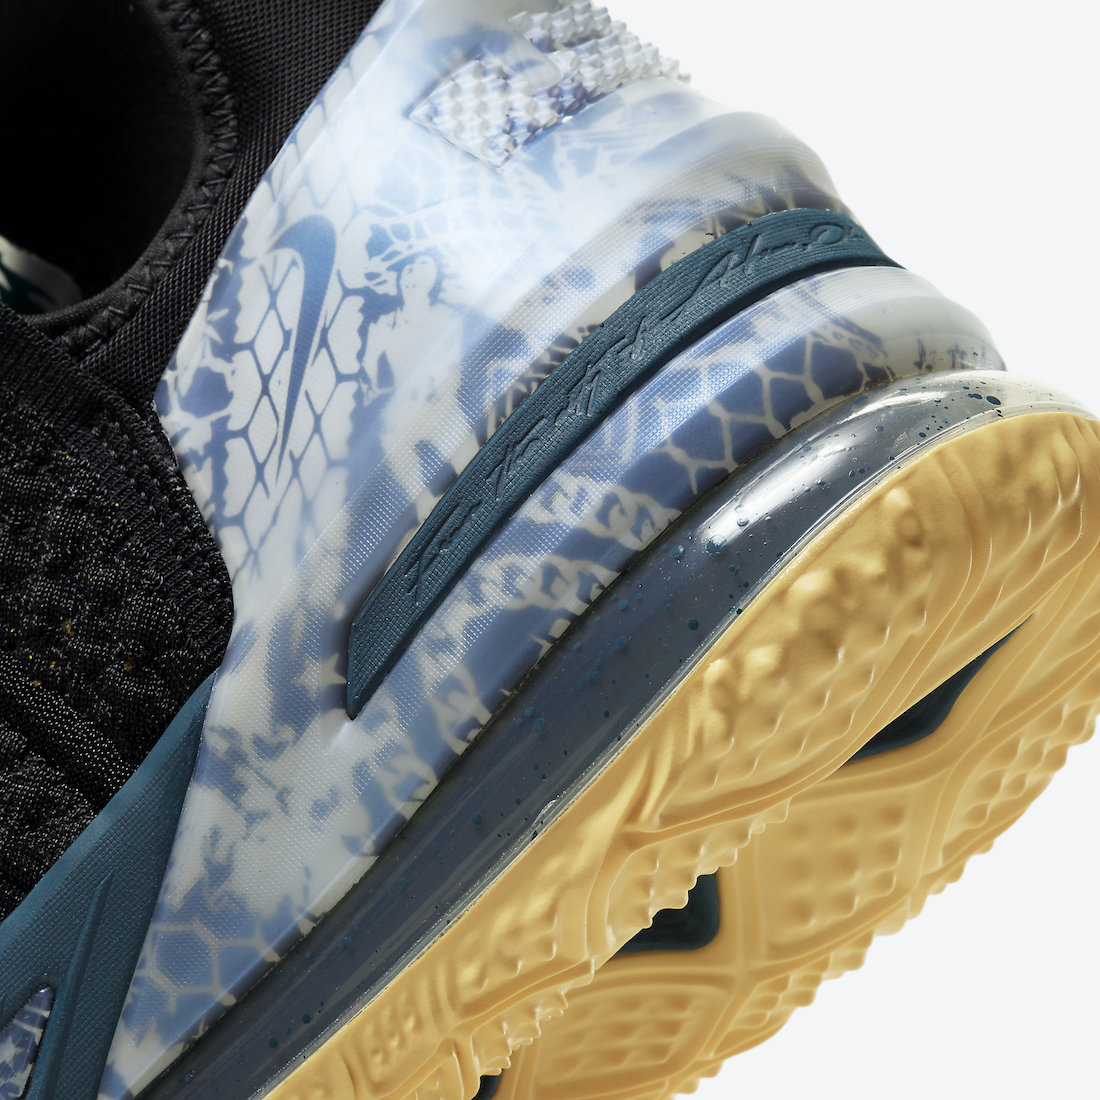 Nike-LeBron-18-Reflections-DB8148-003-Release-Date-7